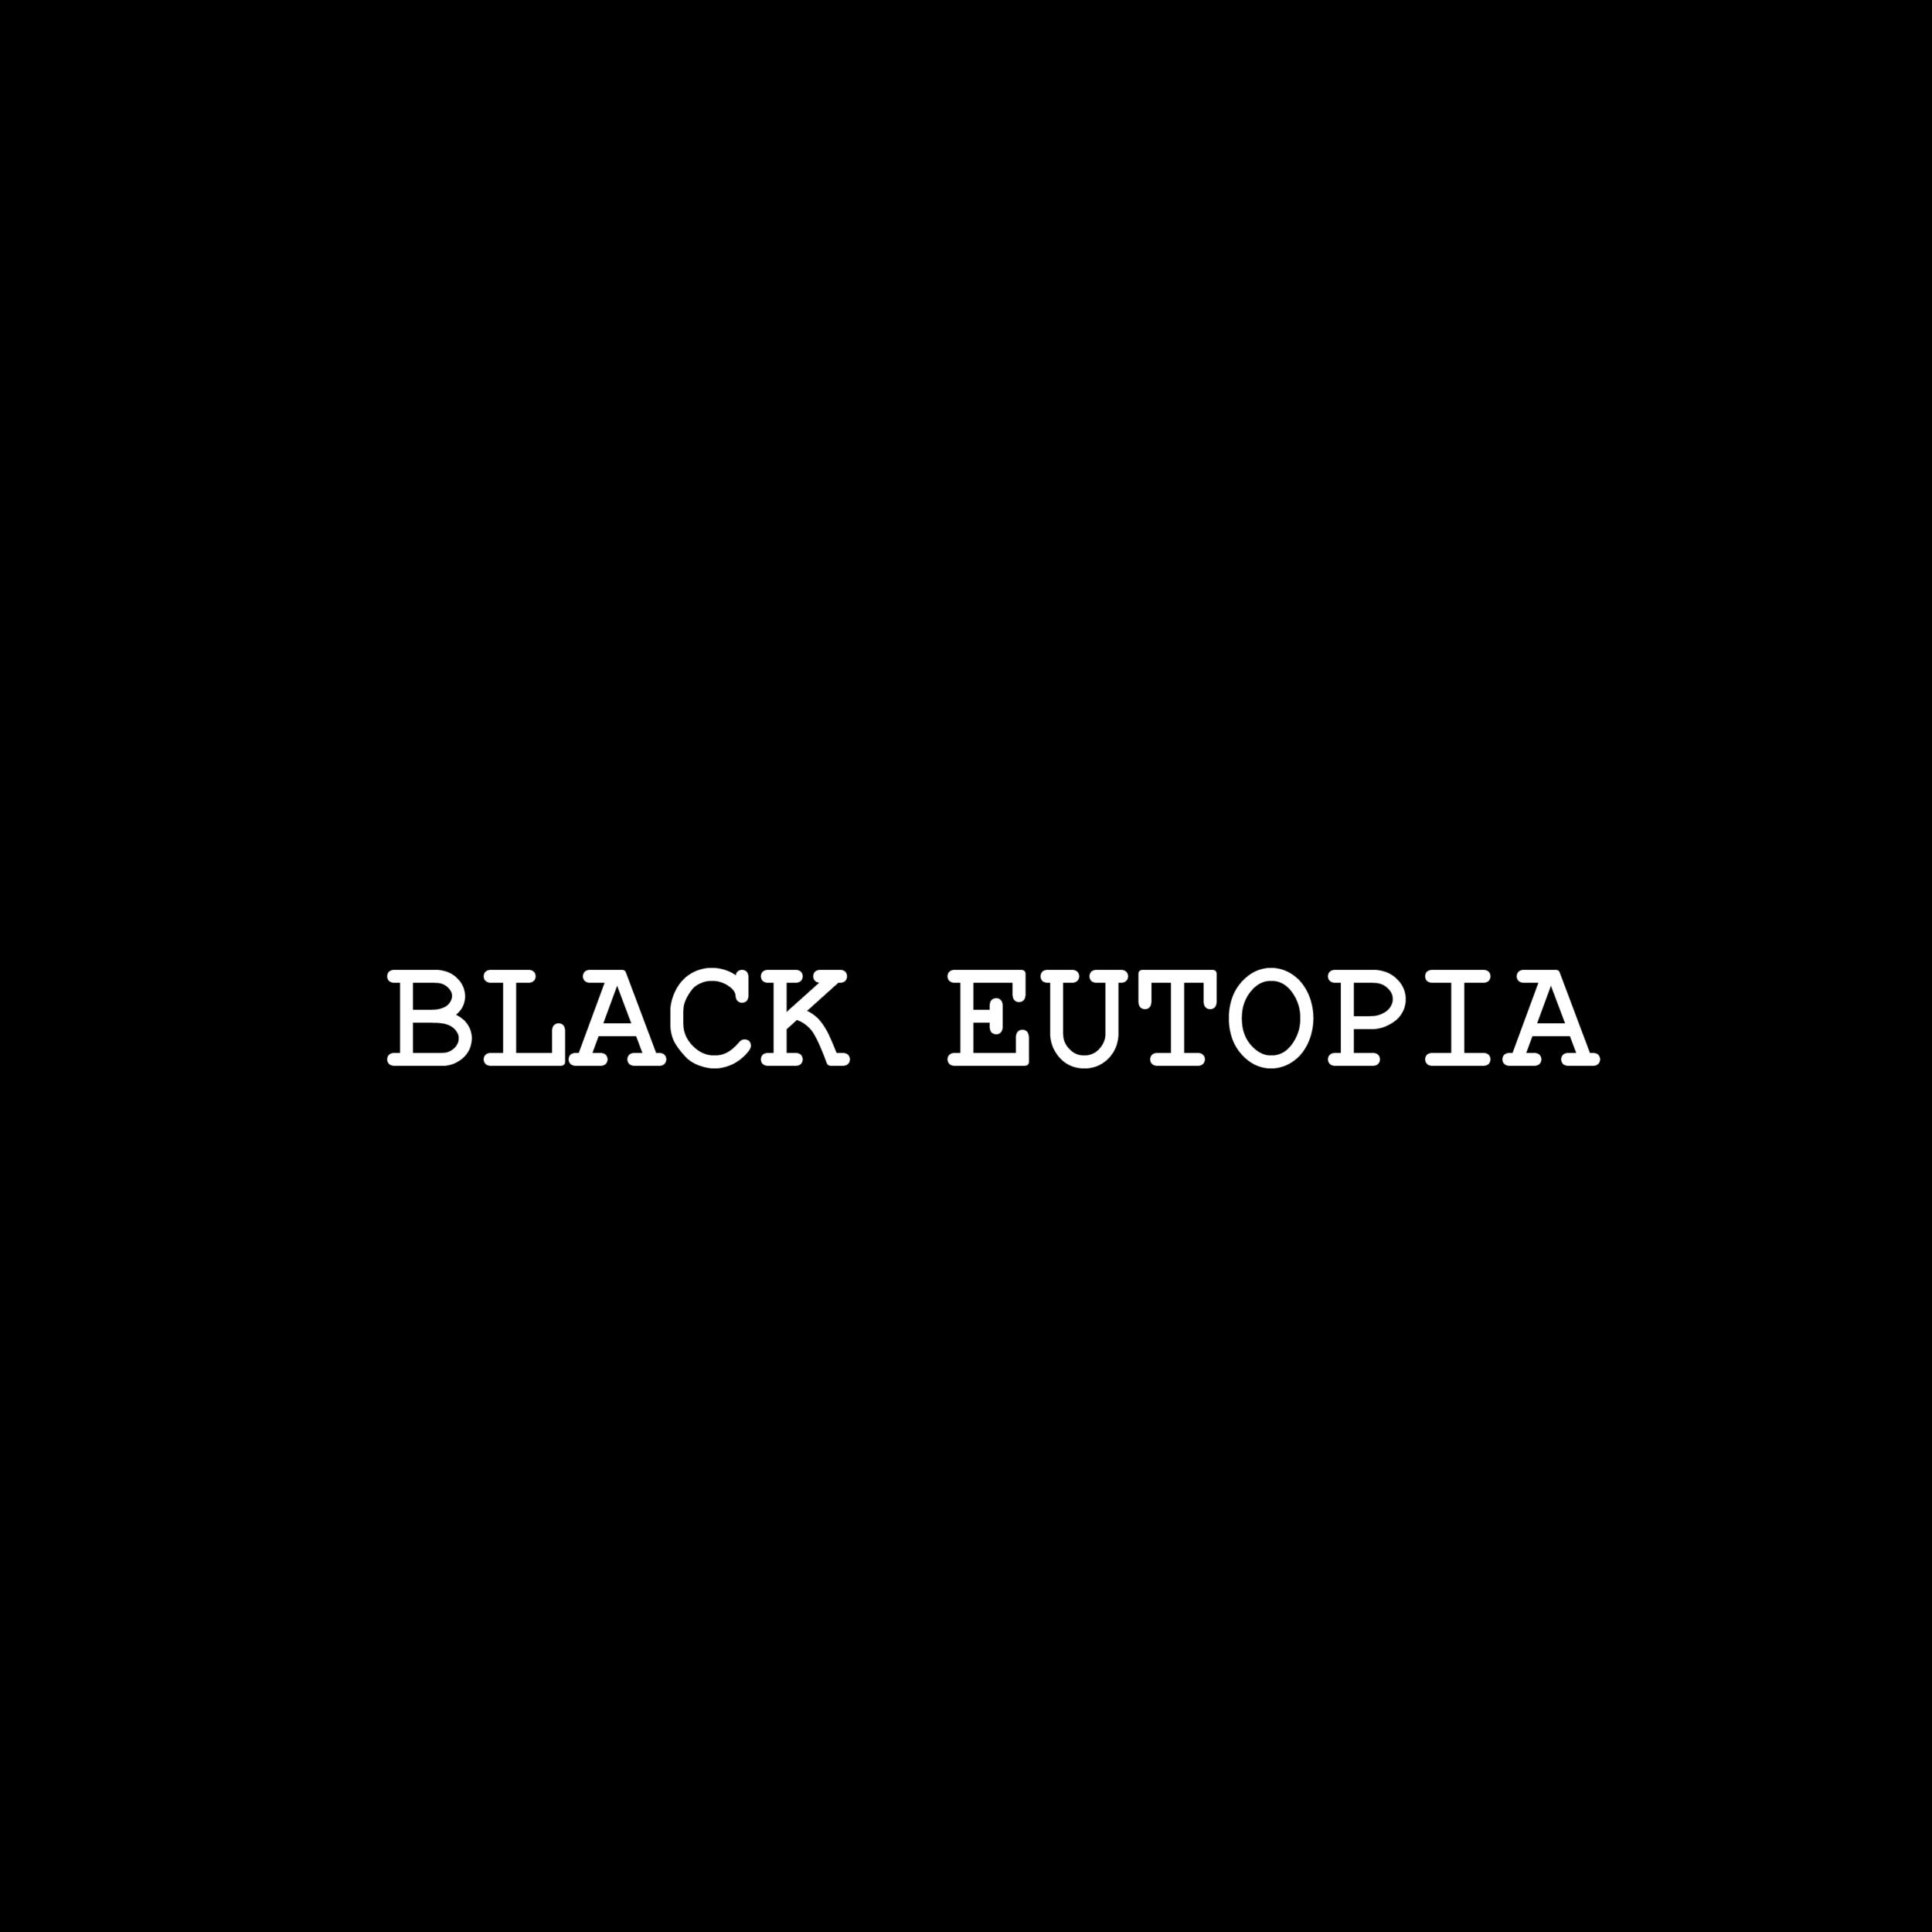 - The mission of the Black Eutopia project is to reimagine ideal situations and,engage marginalized communities in atypical space, through interrogating the connections between migration, labor +art with the hope of developing robust ideas for visioning + activating self sustaining Black Eutopia.*